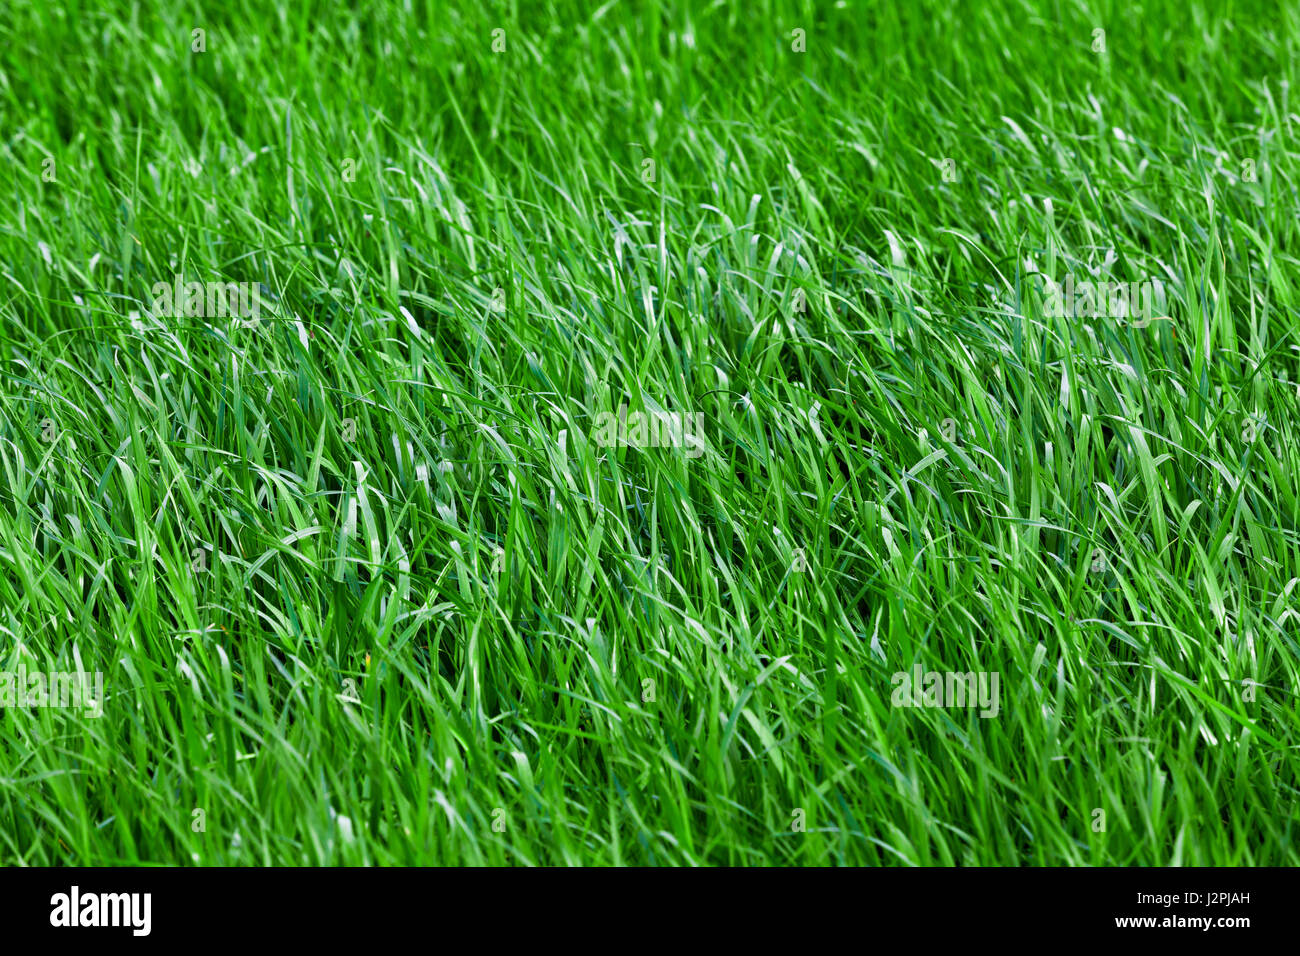 grass seamless texture stockfotos grass seamless texture bilder seite 3 alamy. Black Bedroom Furniture Sets. Home Design Ideas